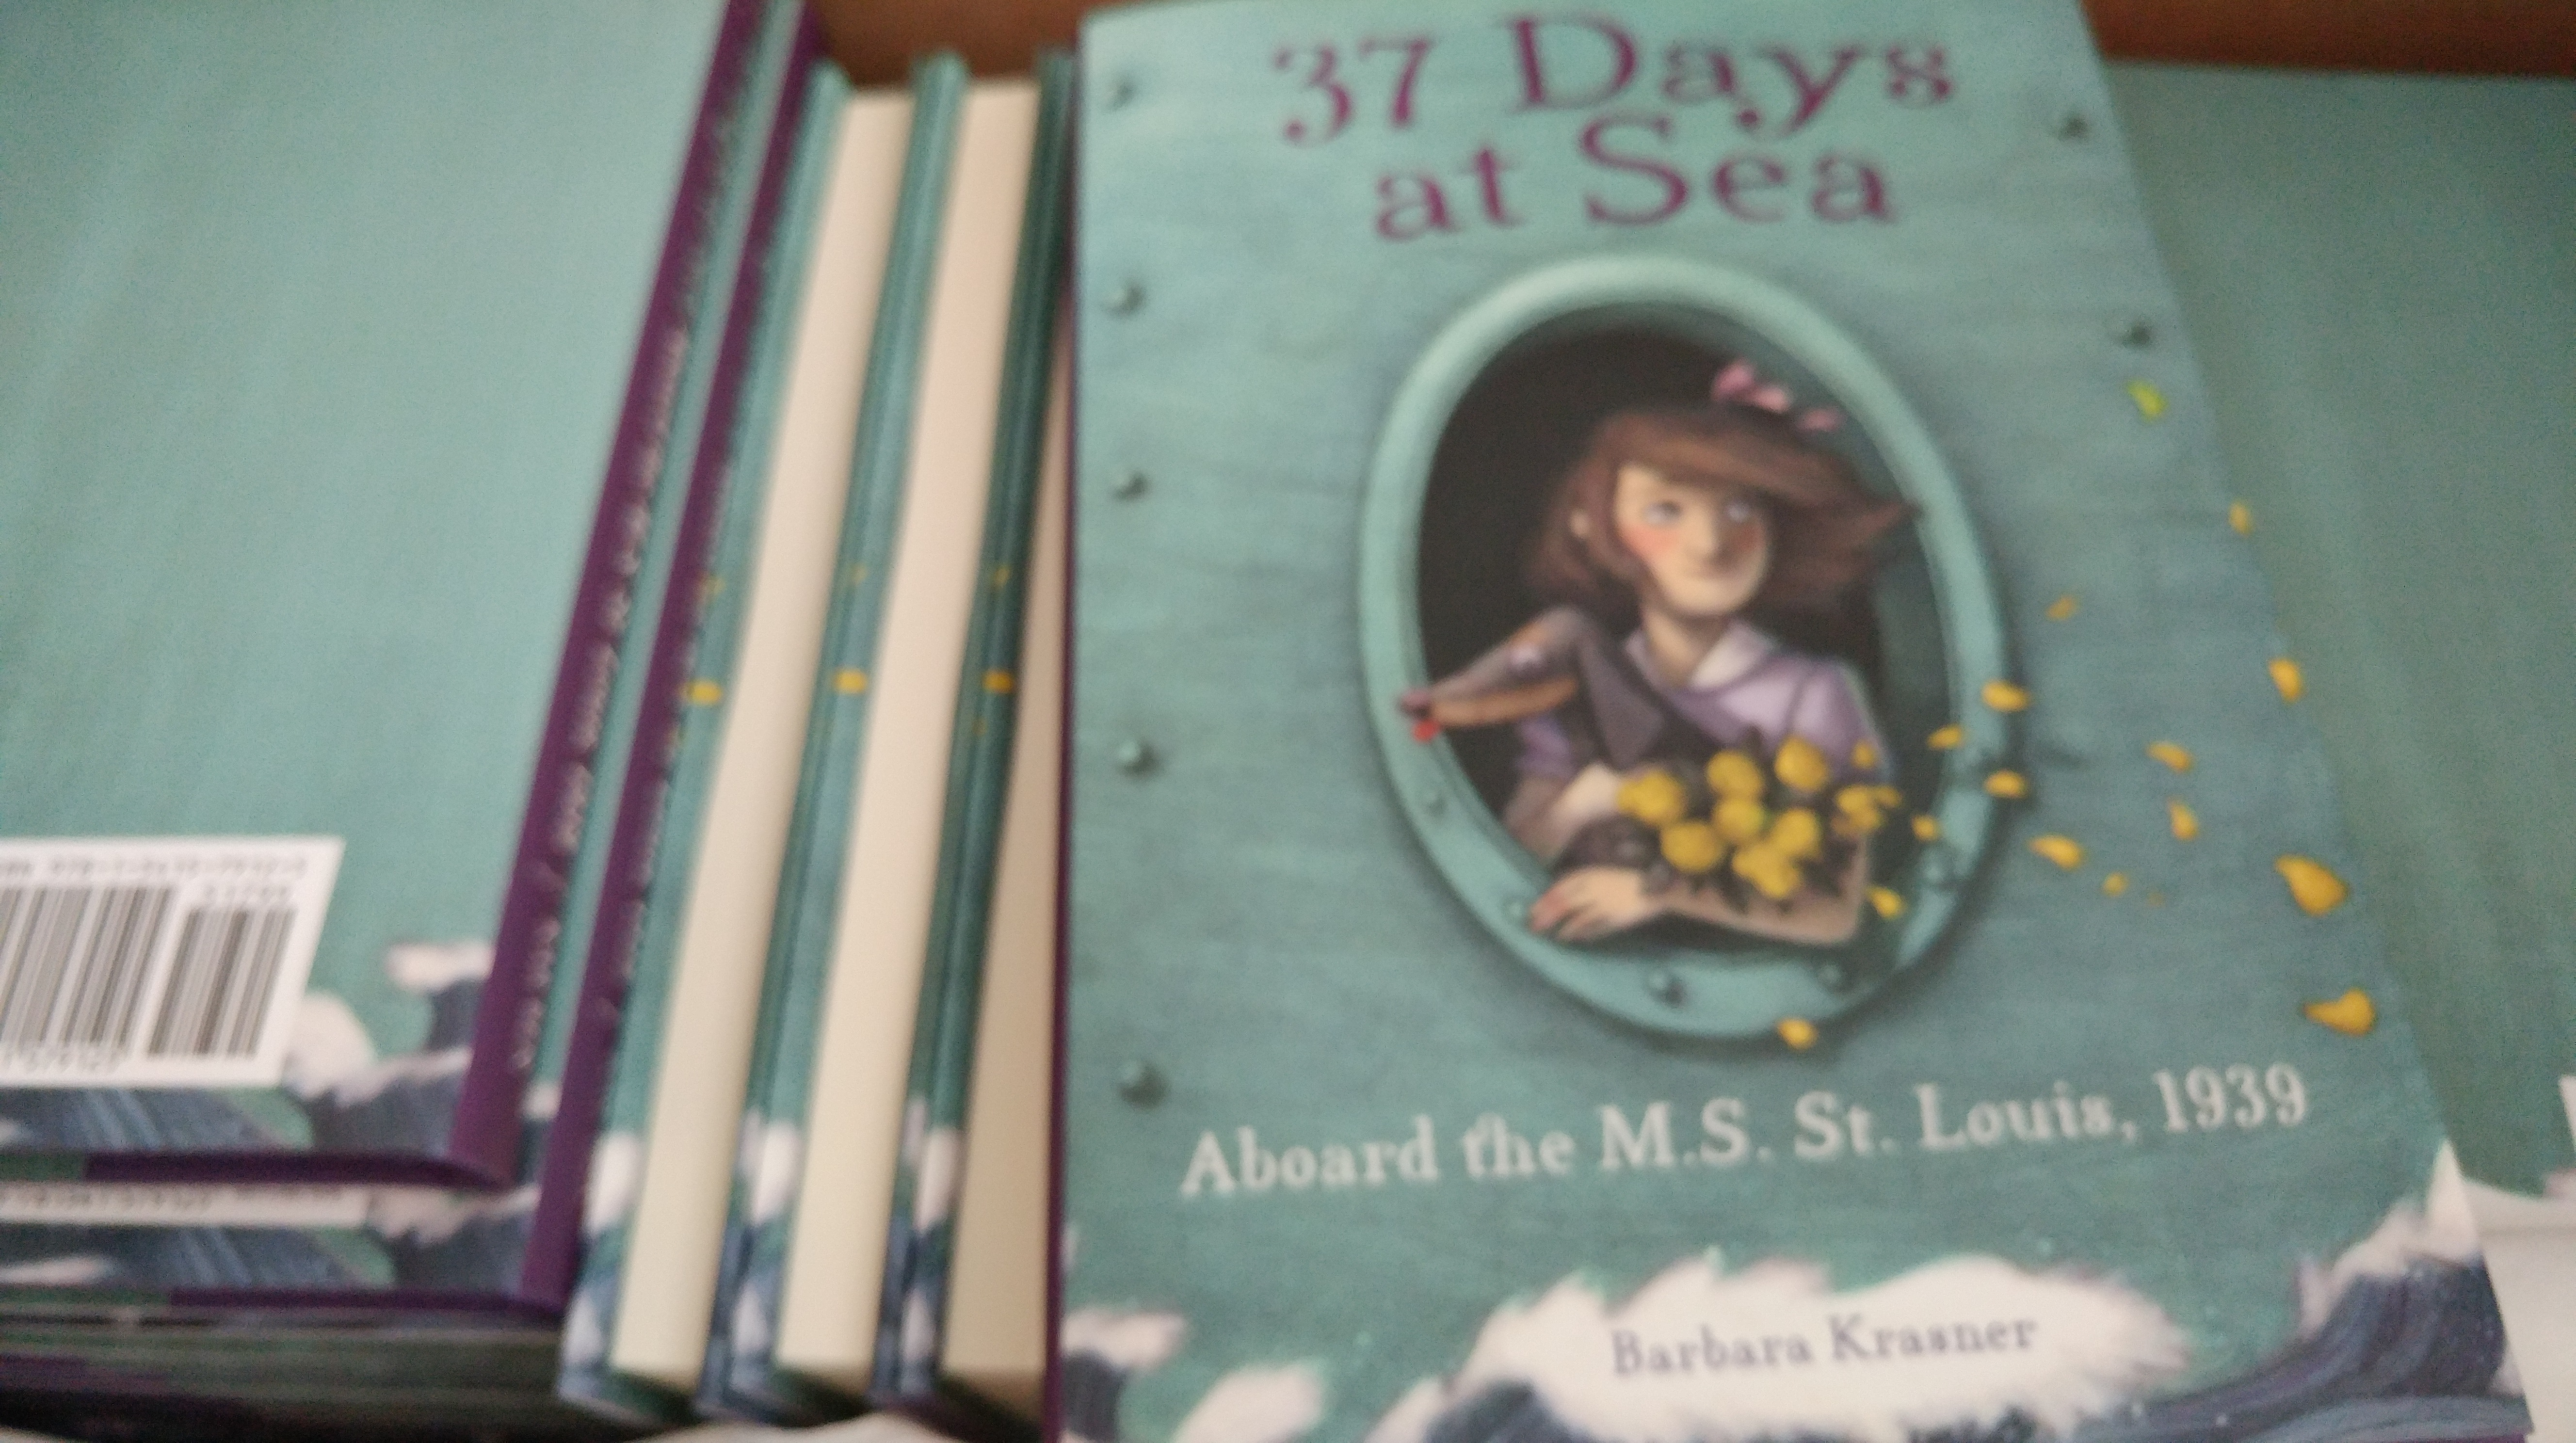 37 Days at Sea package of books